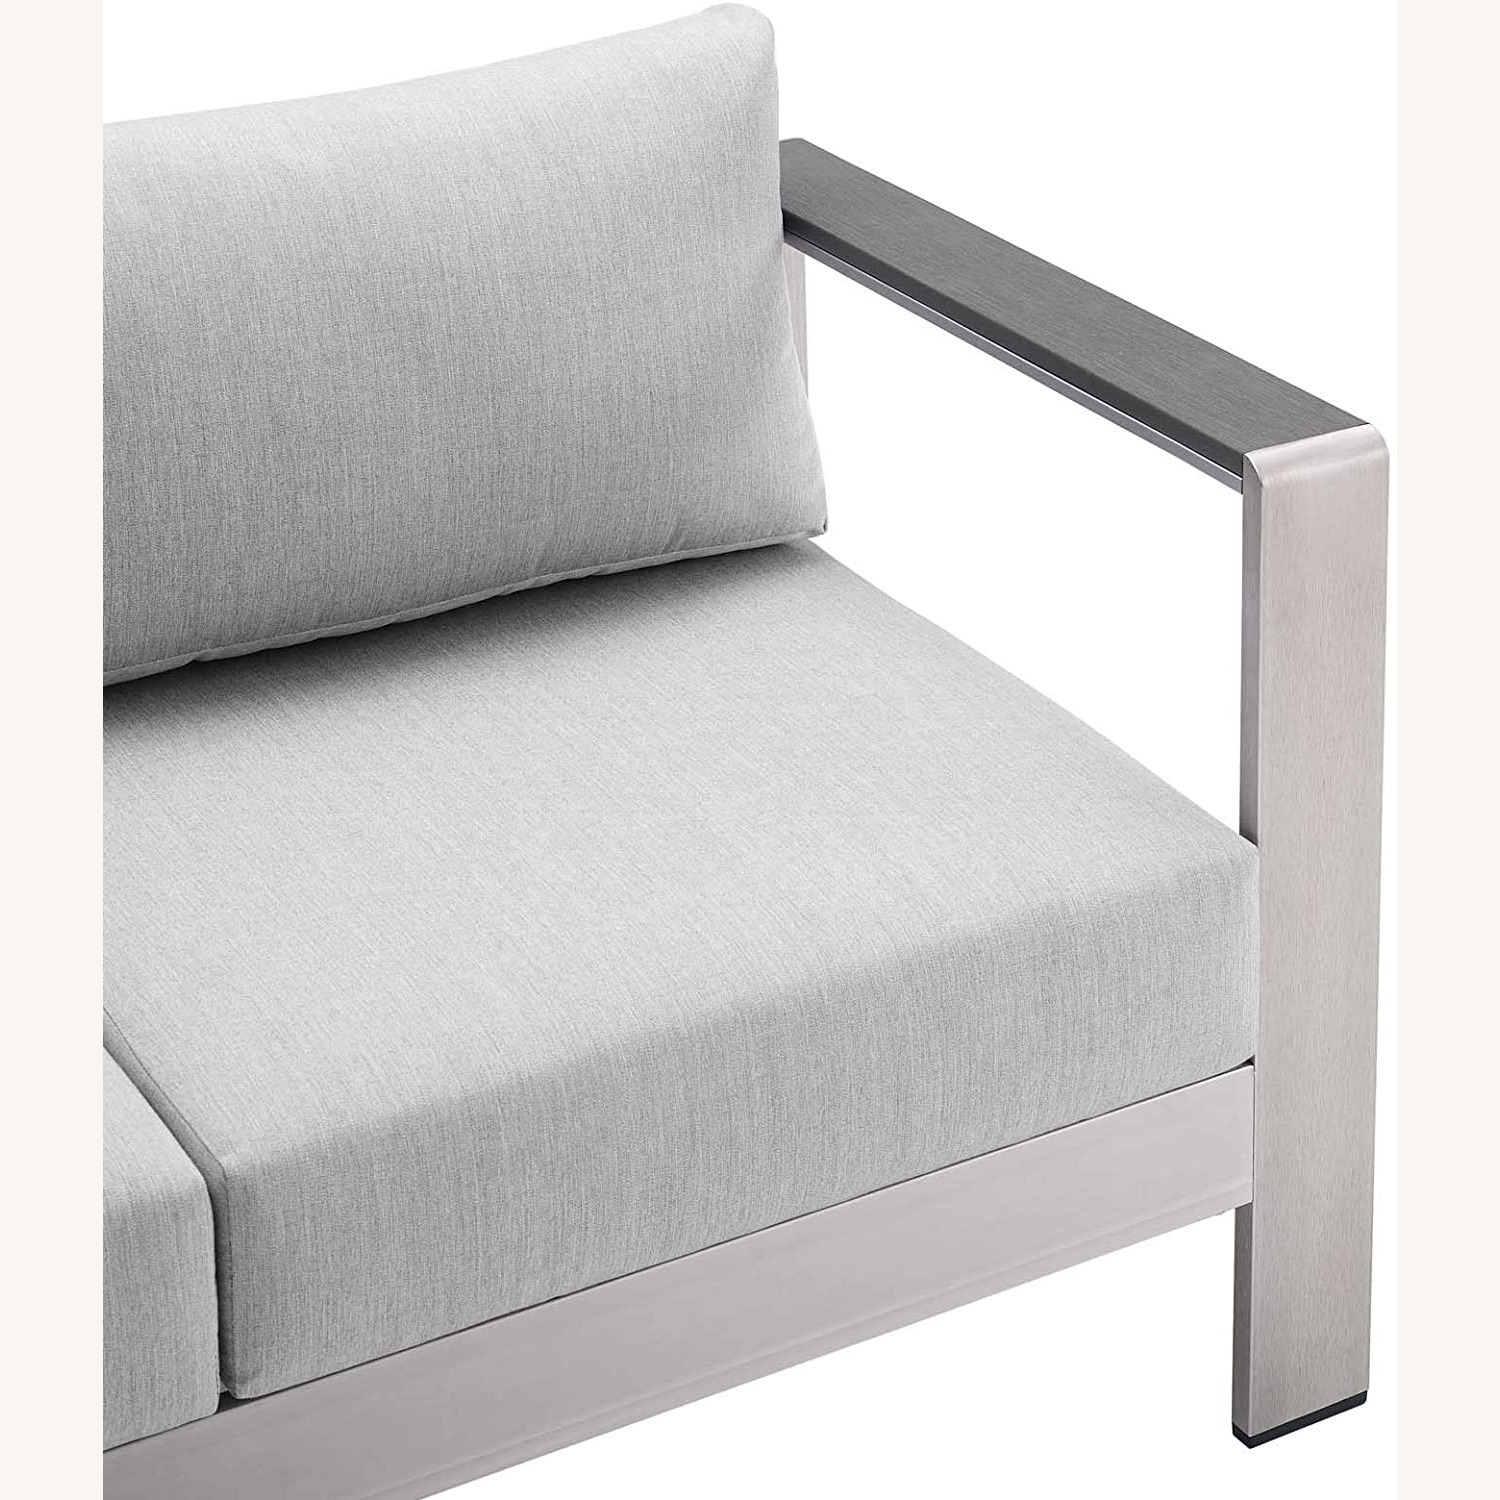 Outdoor Loveseat In Silver Aluminum Frame Finish - image-4